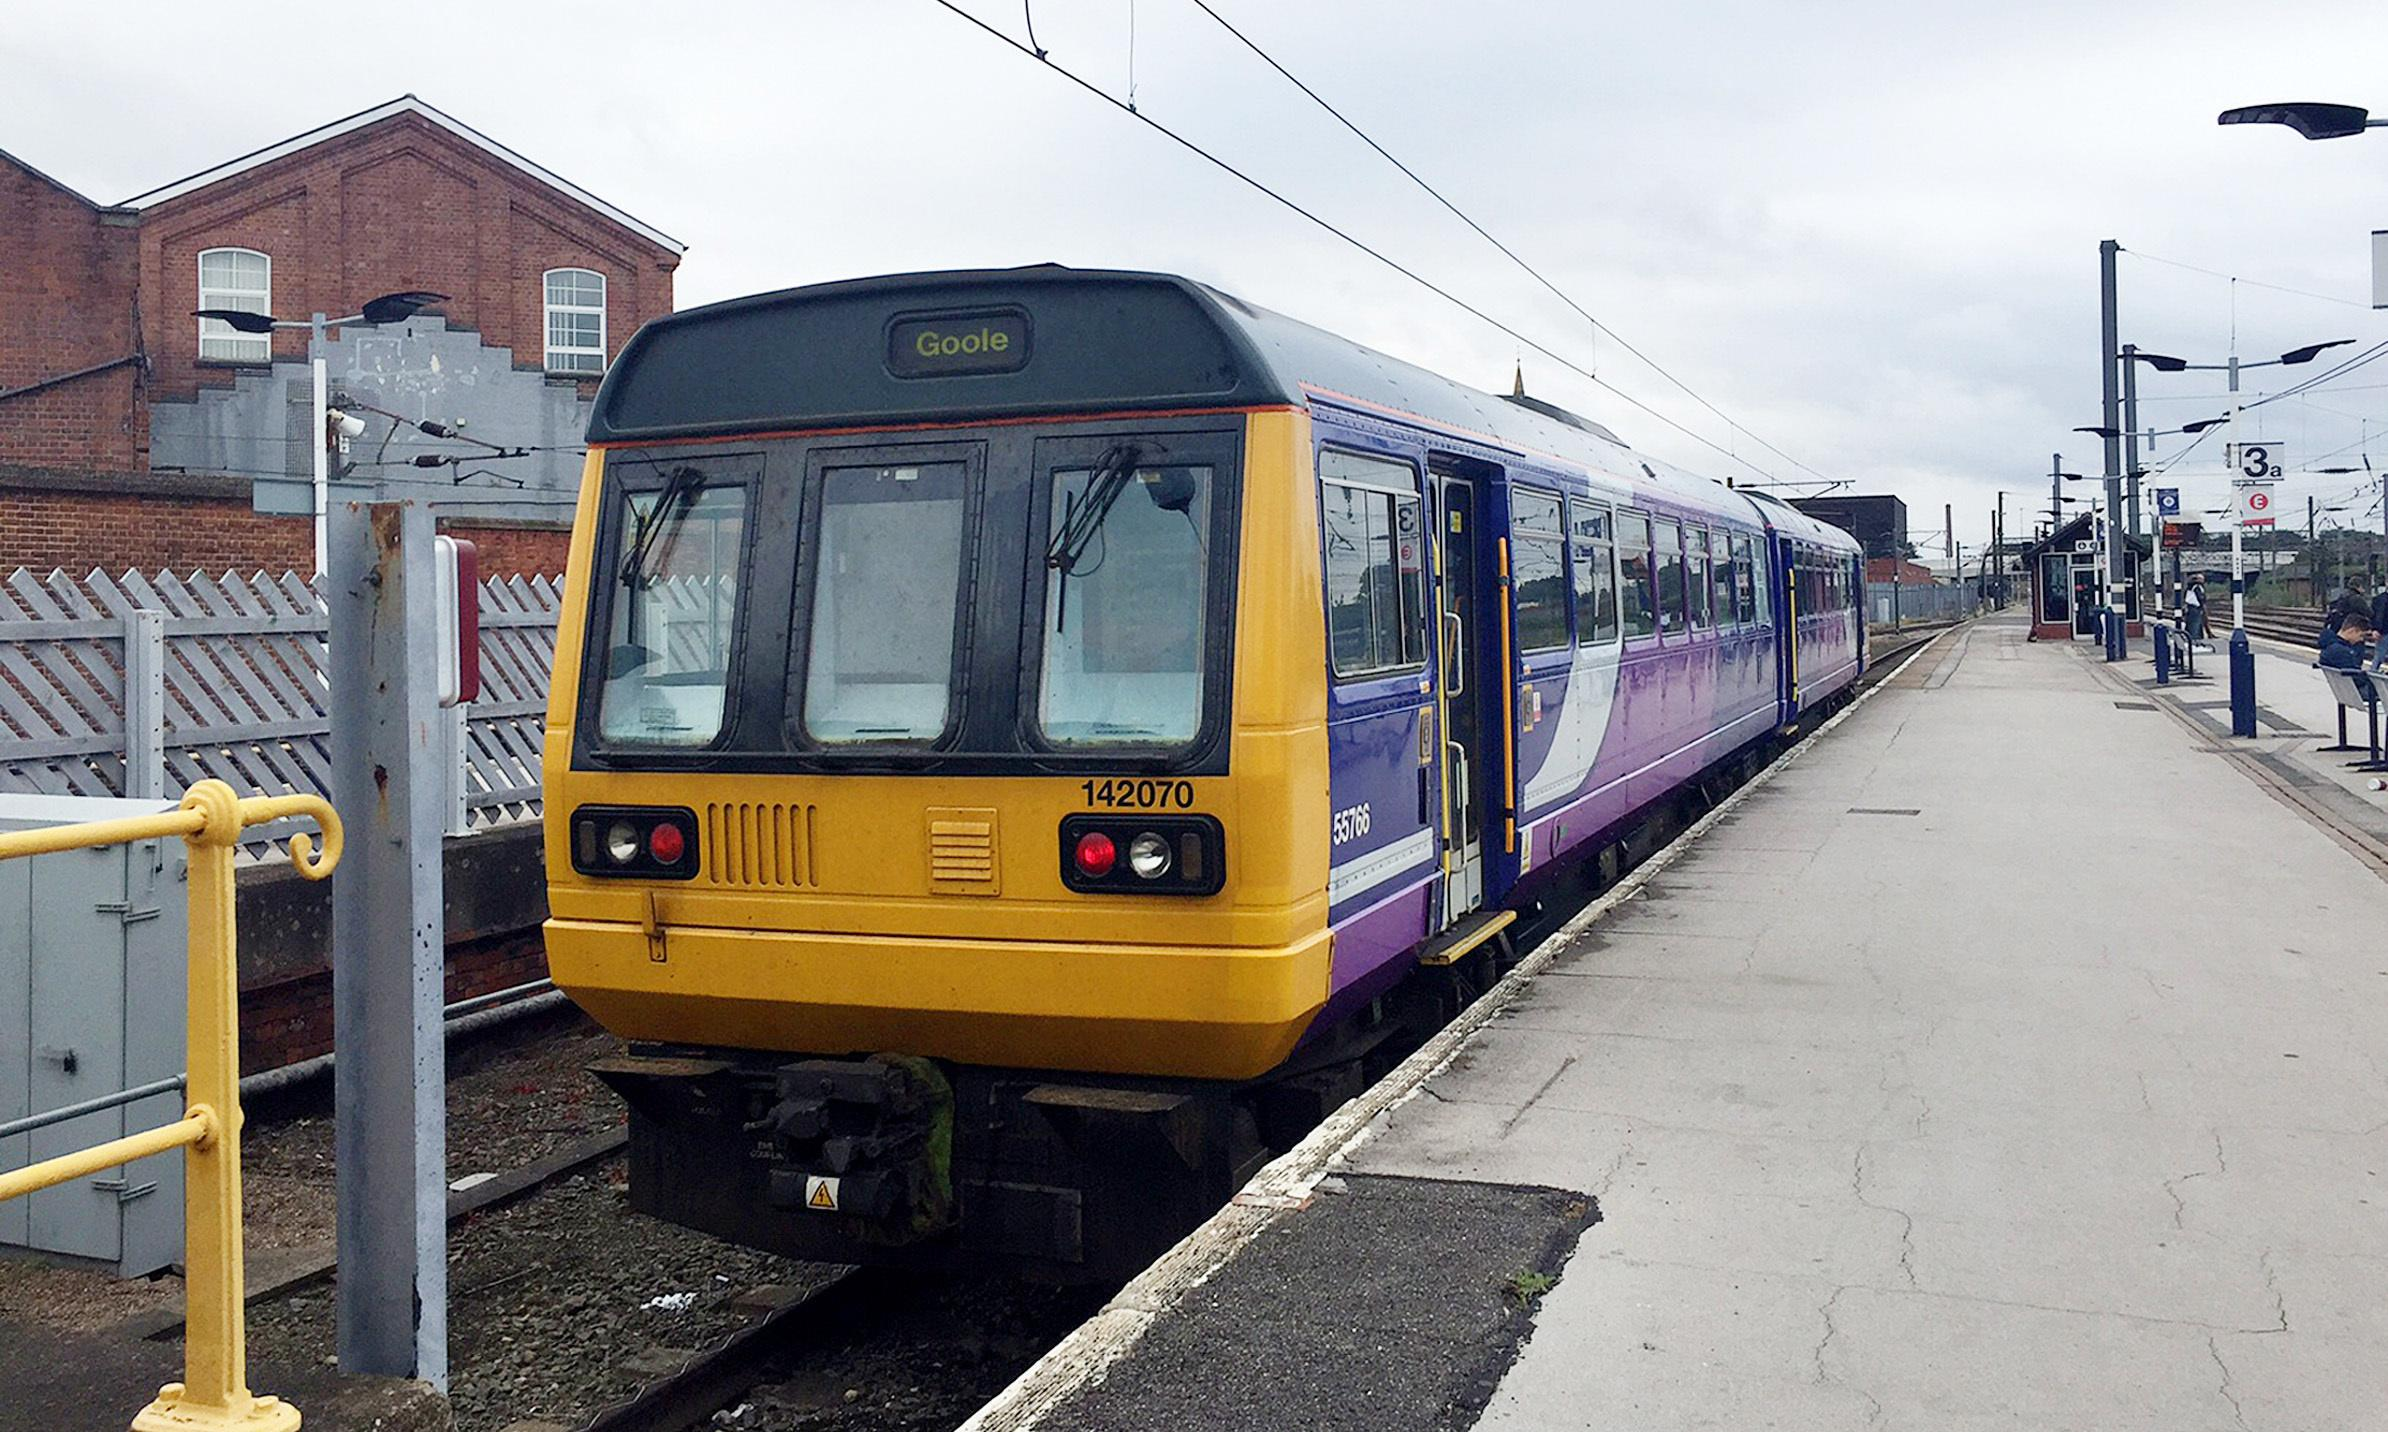 Pacer train passengers deserve fare cuts, say northern England leaders